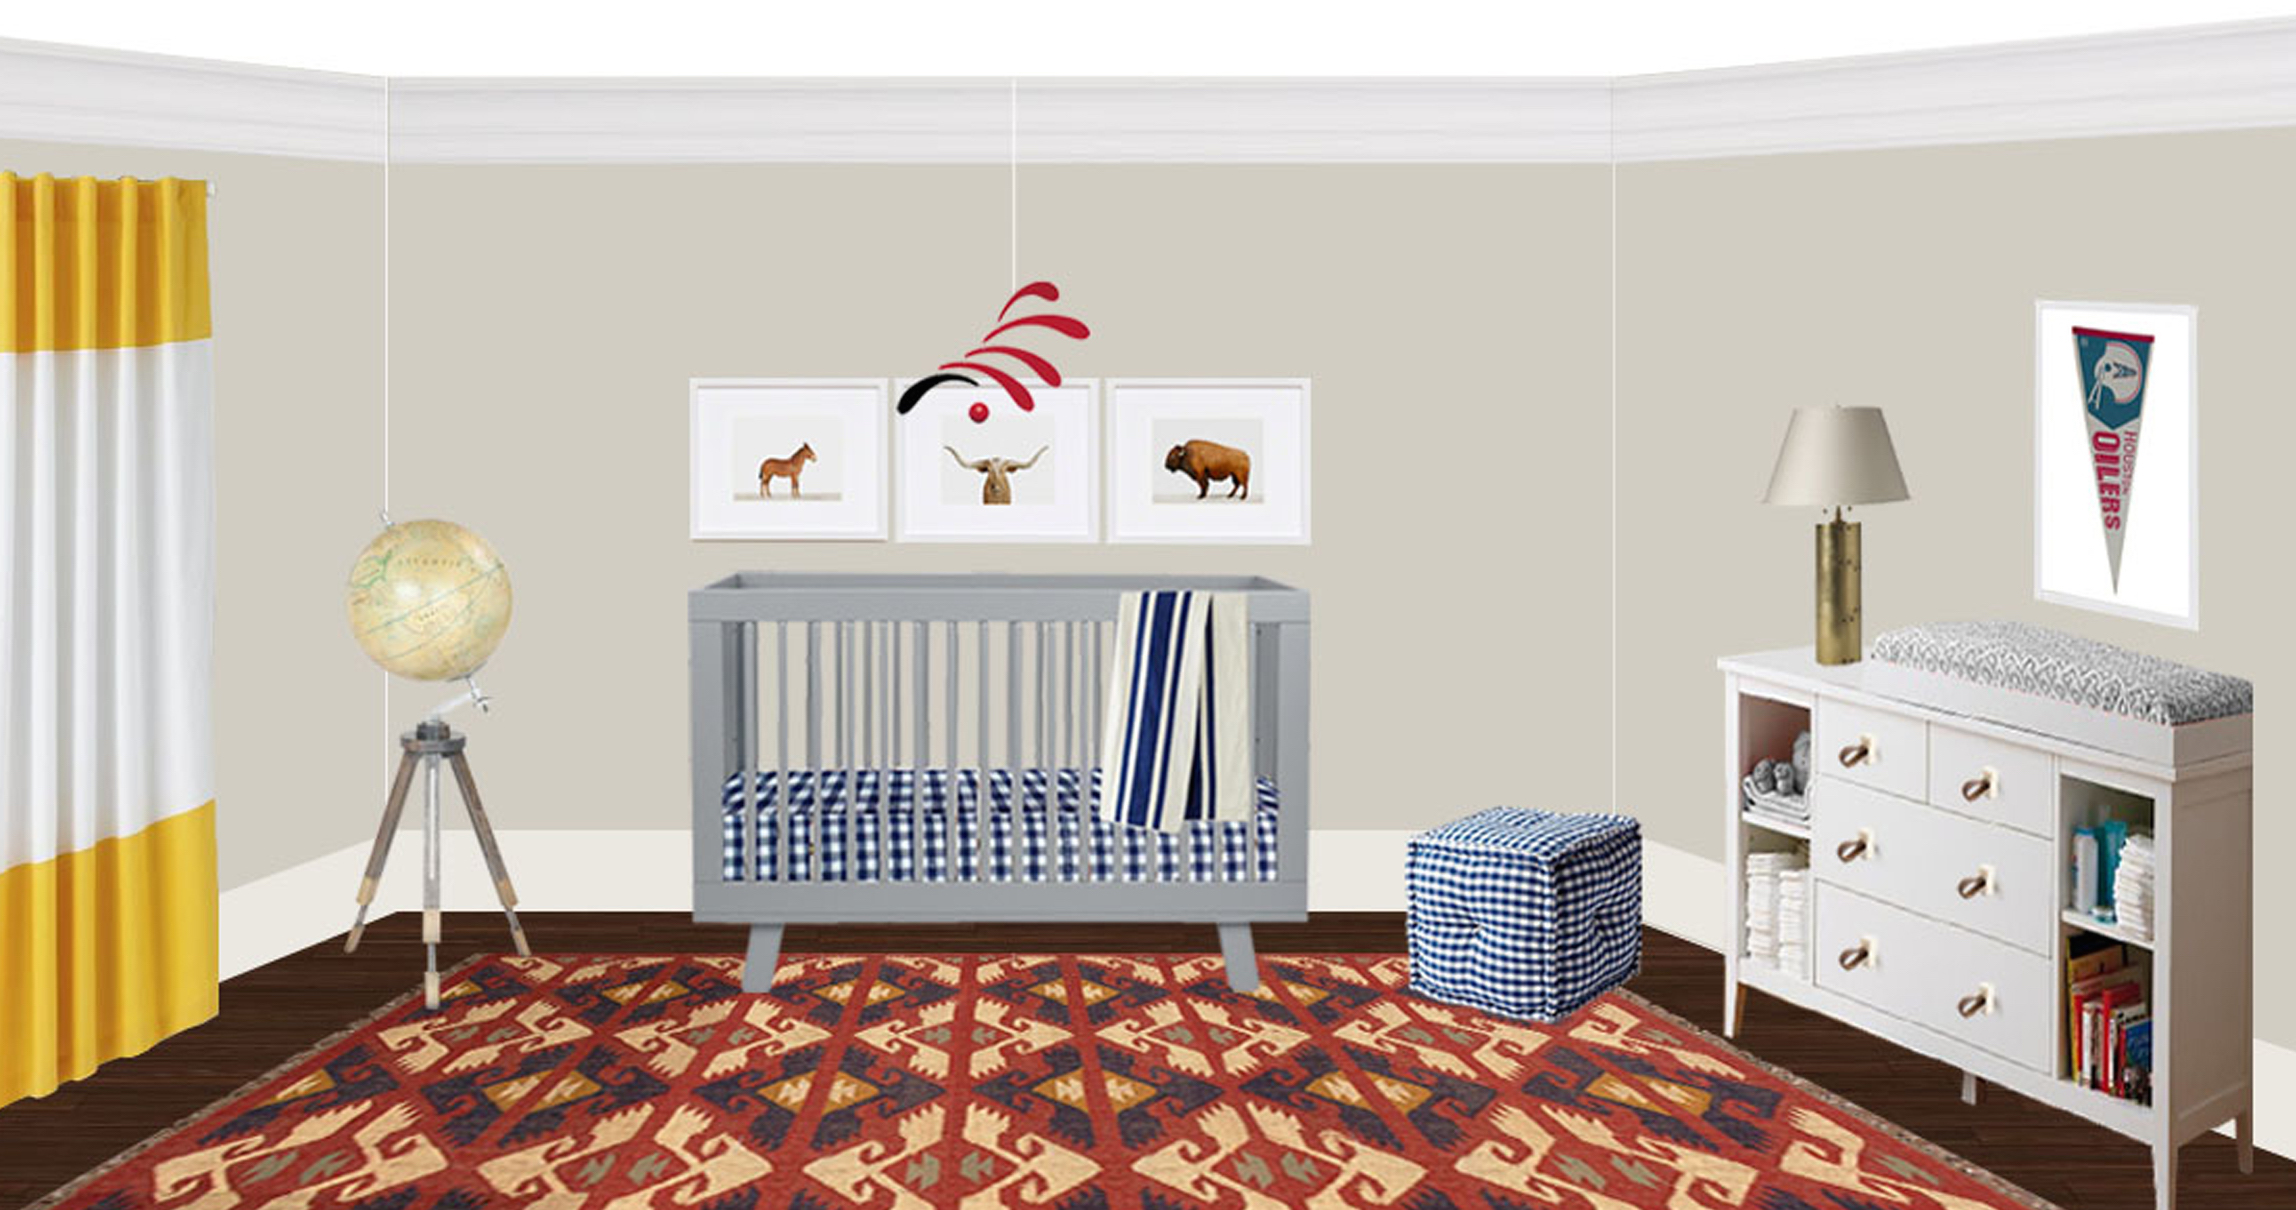 Leslie boys room final rendering!